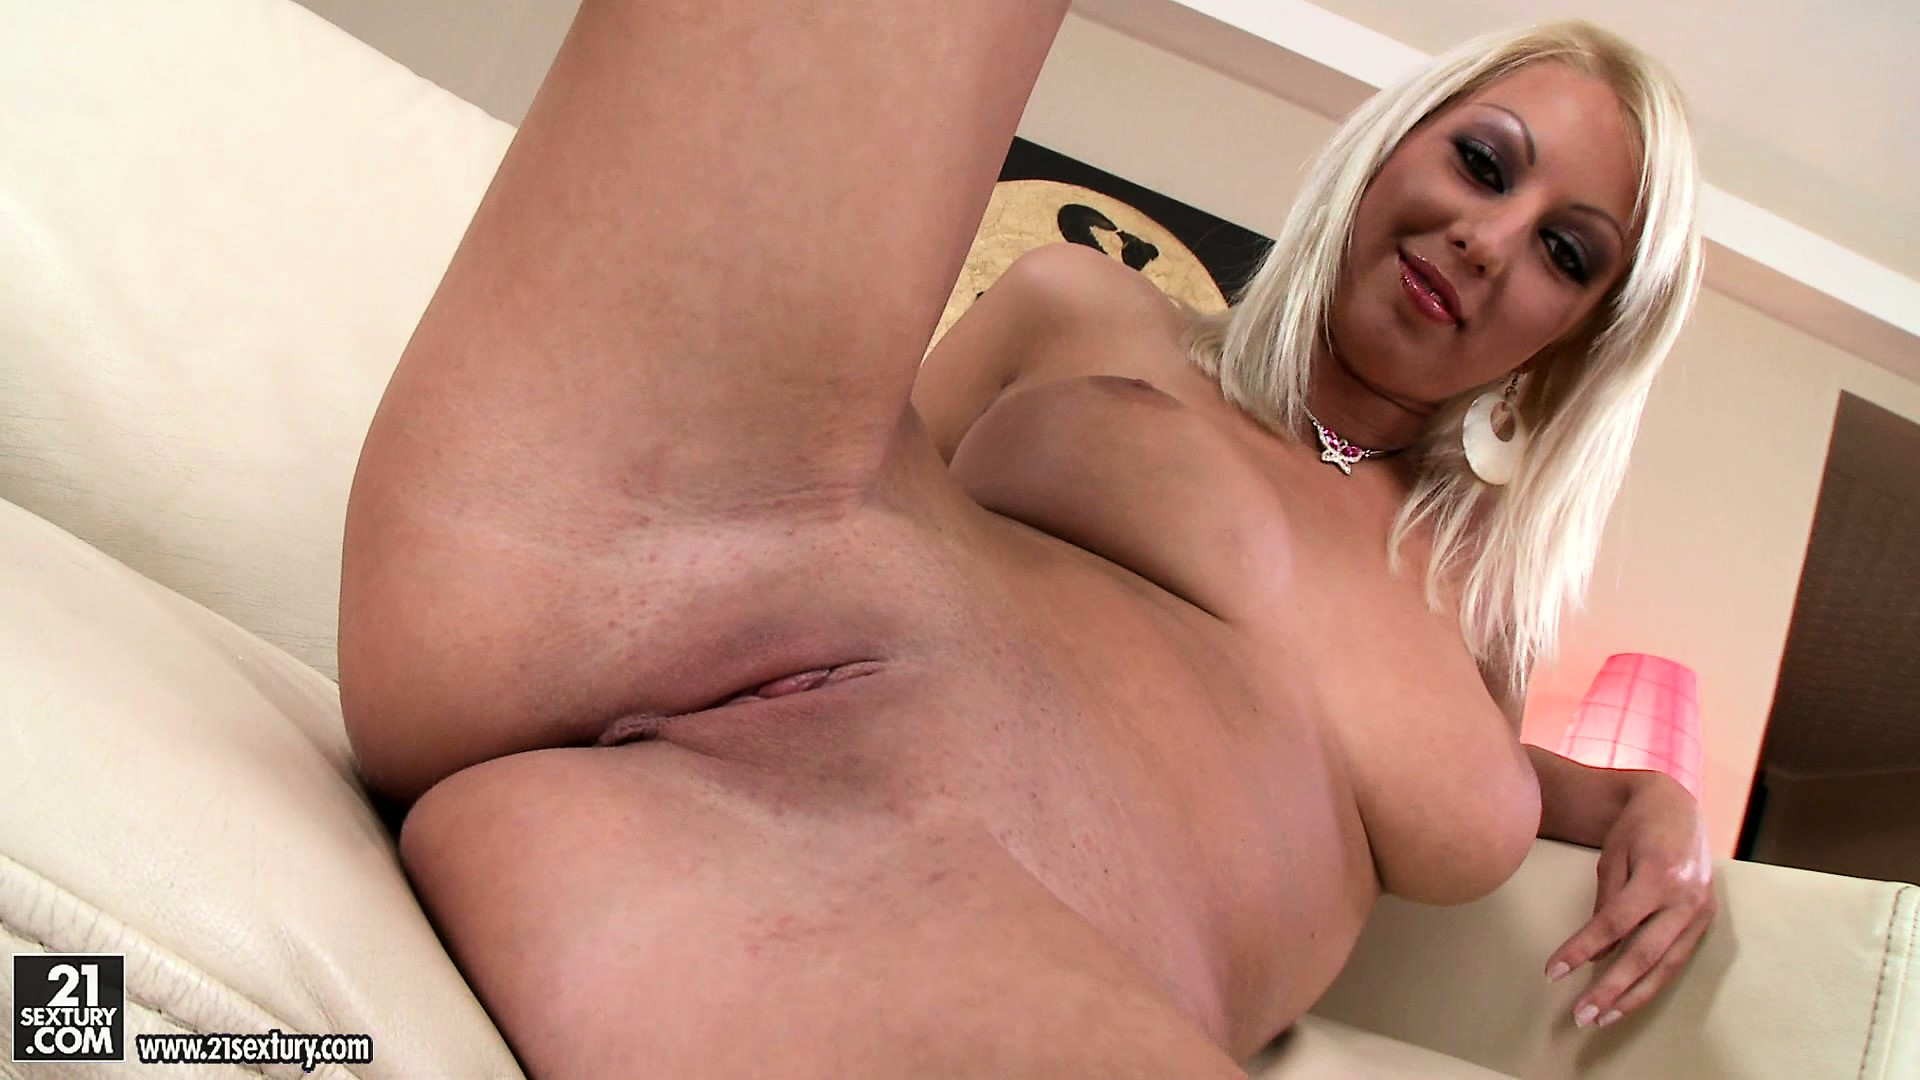 Porno Video of Pamela Is A Dazzling Blonde With Perfect Tits, A Divine Ass And A Tight Snatch